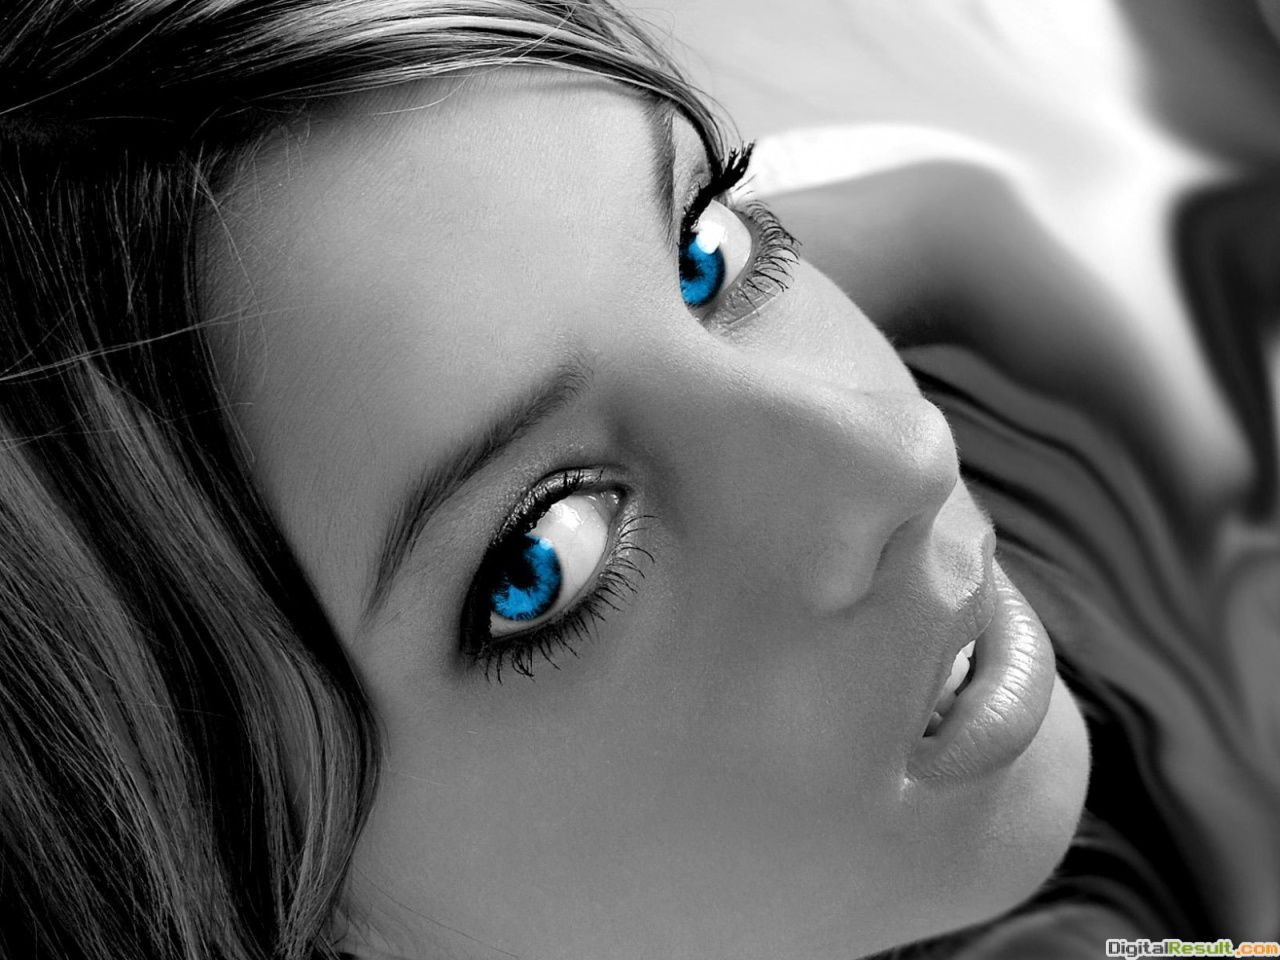 Emo Girl Blue Eyes Wallpaper: Common Details Found in Wallpaper HD Emo